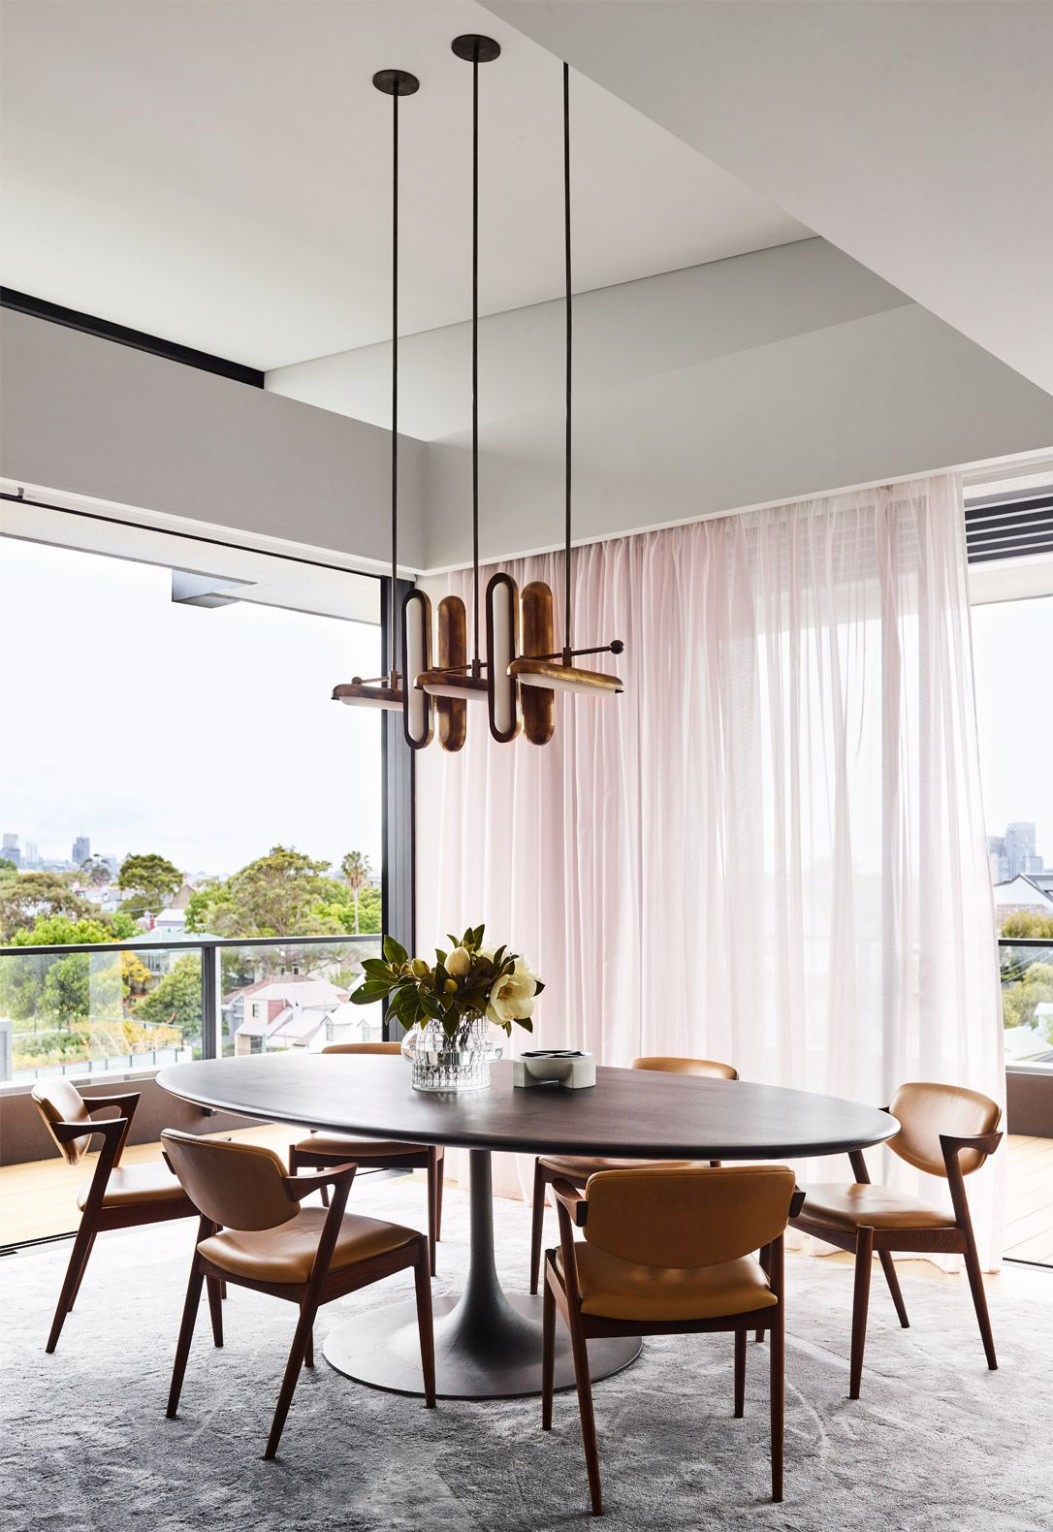 9 Best Window Treatment Ideas - Window Coverings, Curtains, & Blinds - Window Ideas For Dining Room